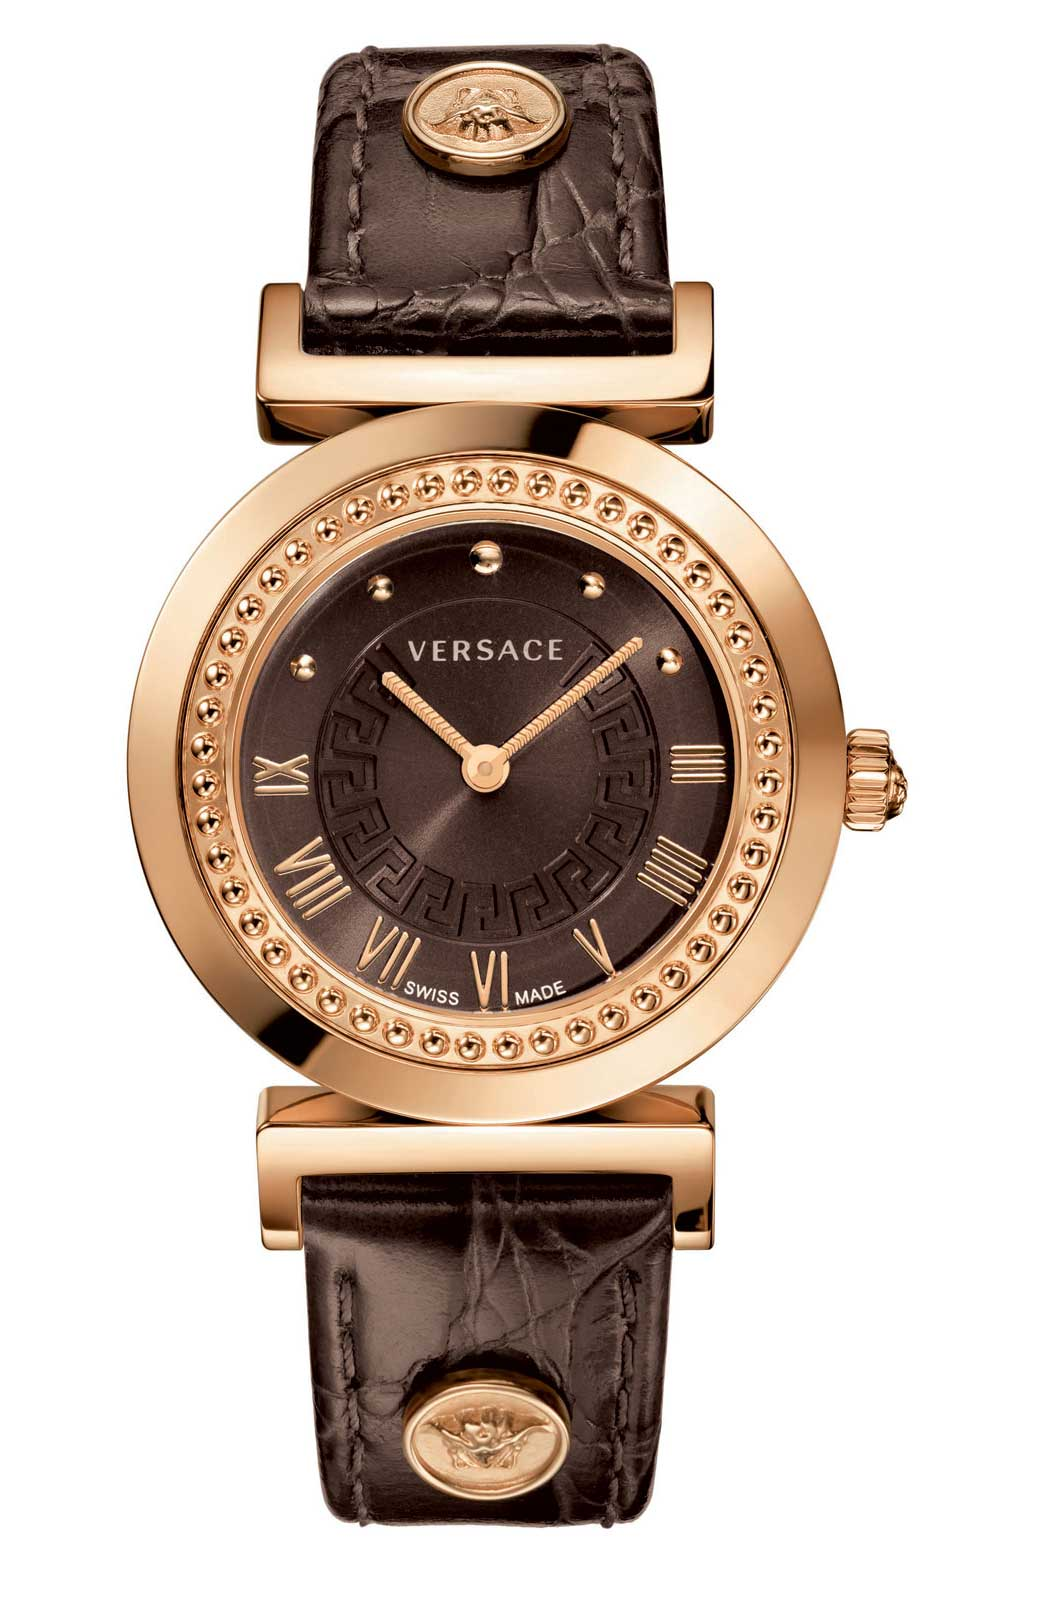 Versace women's watches15